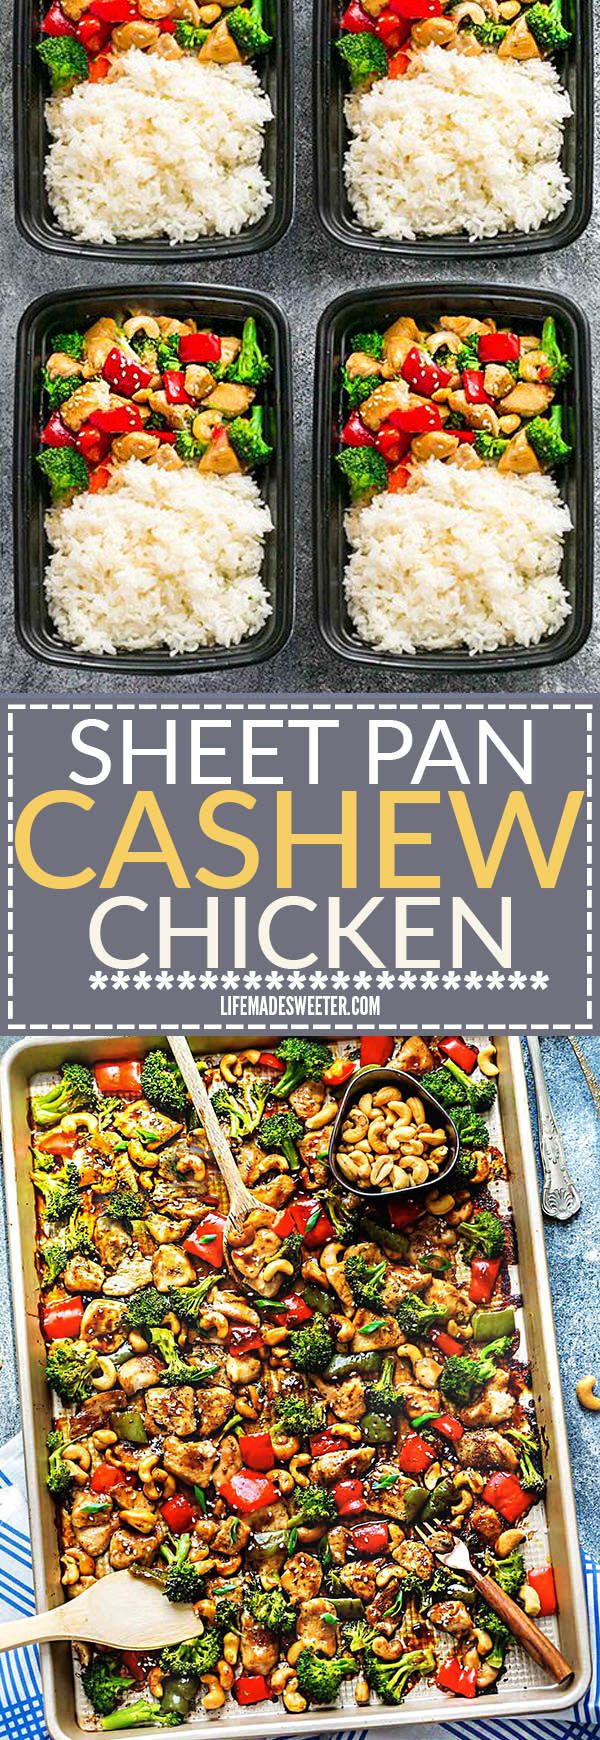 Cashew Chicken Sheet Pan has all the flavors of the popular Chinese restaurant takeout dish made on a sheet pan. Best of all, super easy to make with paleo friendly options. Plus a serving of tender crisp broccoli and red & green bell peppers for a healthier meal. Modify to be clean.